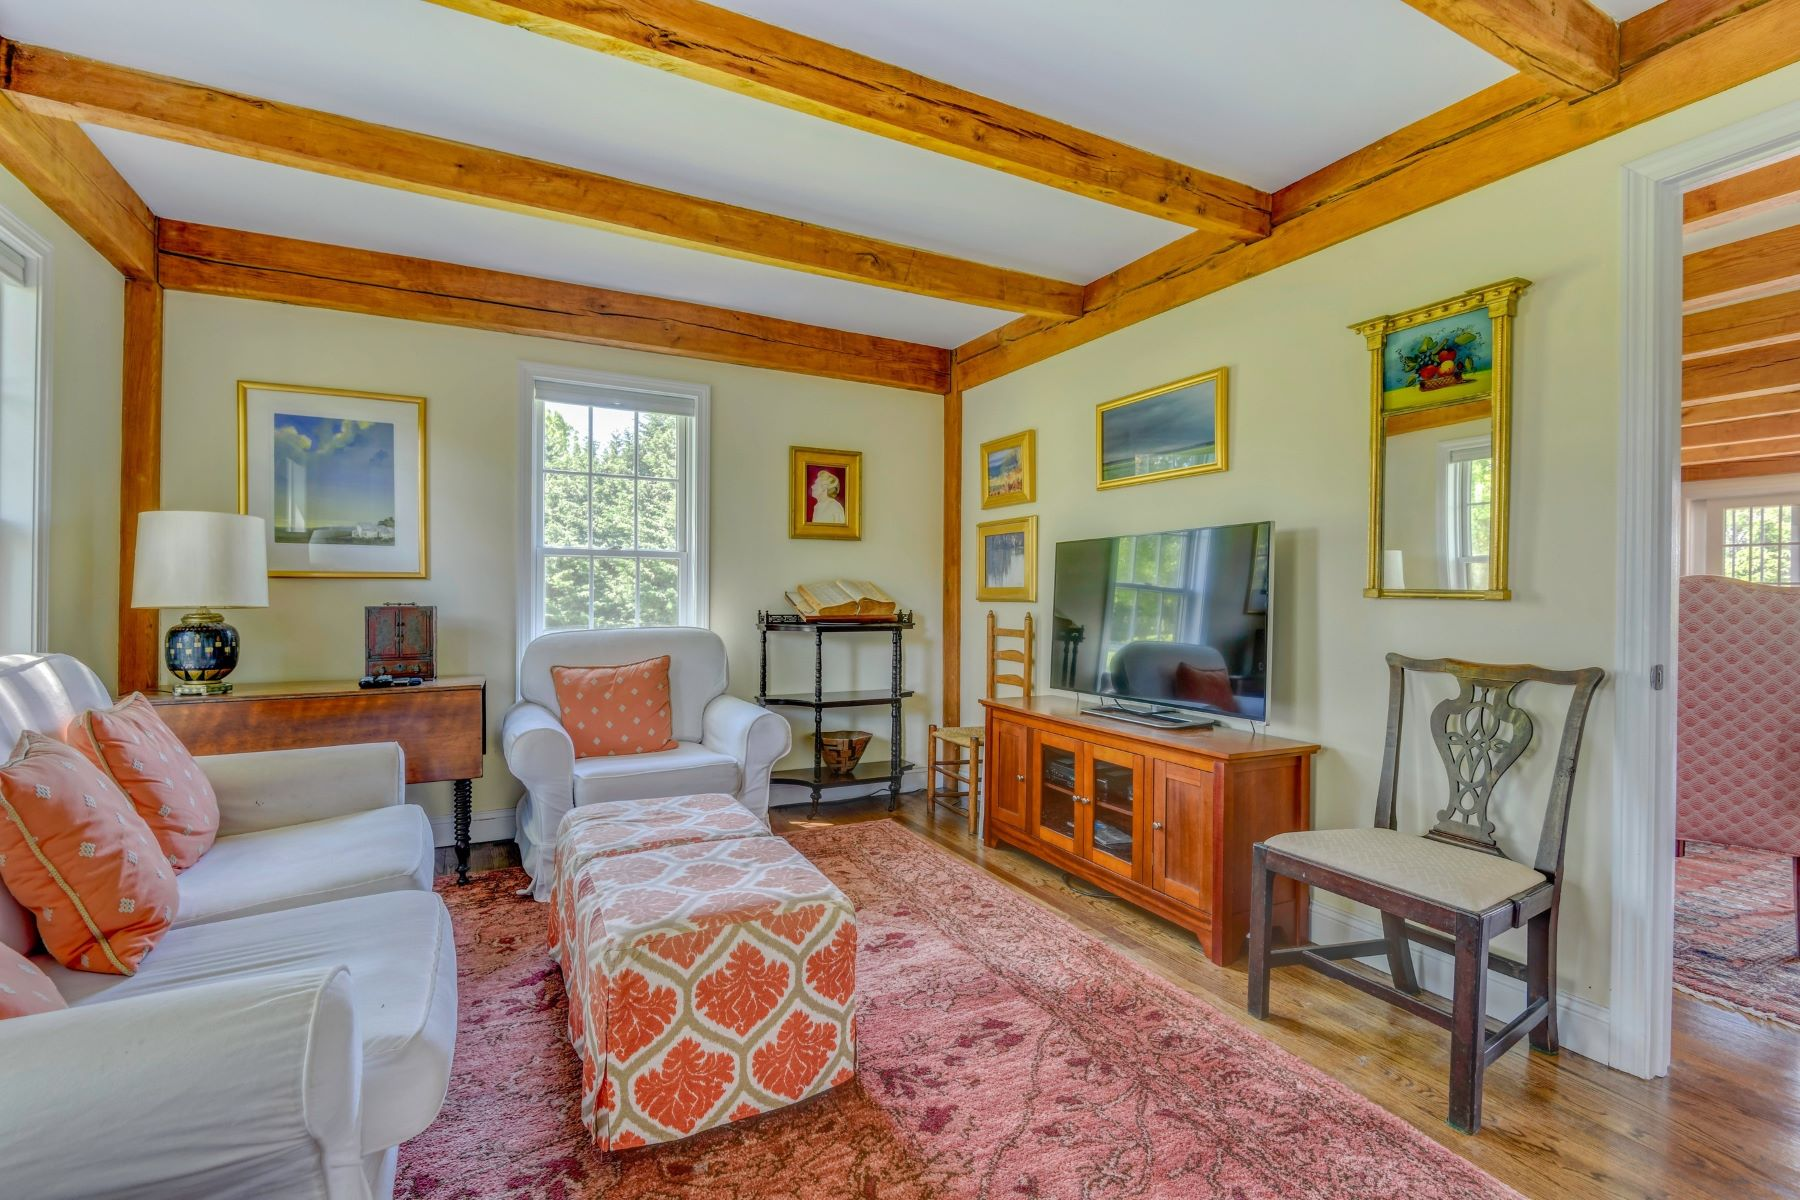 Additional photo for property listing at Idyllic South Tiverton Colonial 61 Peaceful Way Tiverton, Rhode Island 02878 United States